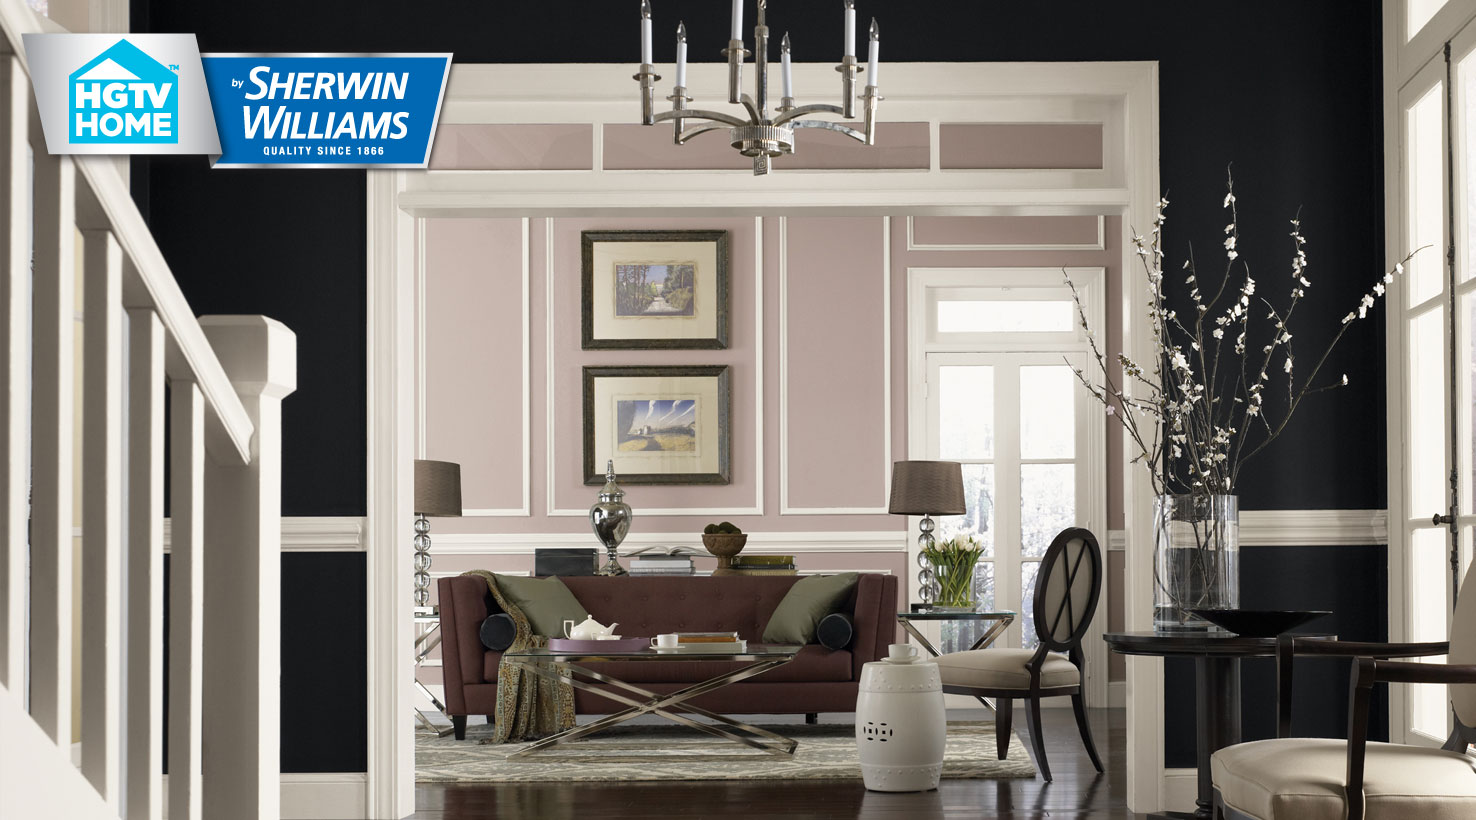 Dovetail Sw7018 Liveable Luxe Color Palette Hgtv Home By Sherwin Williams